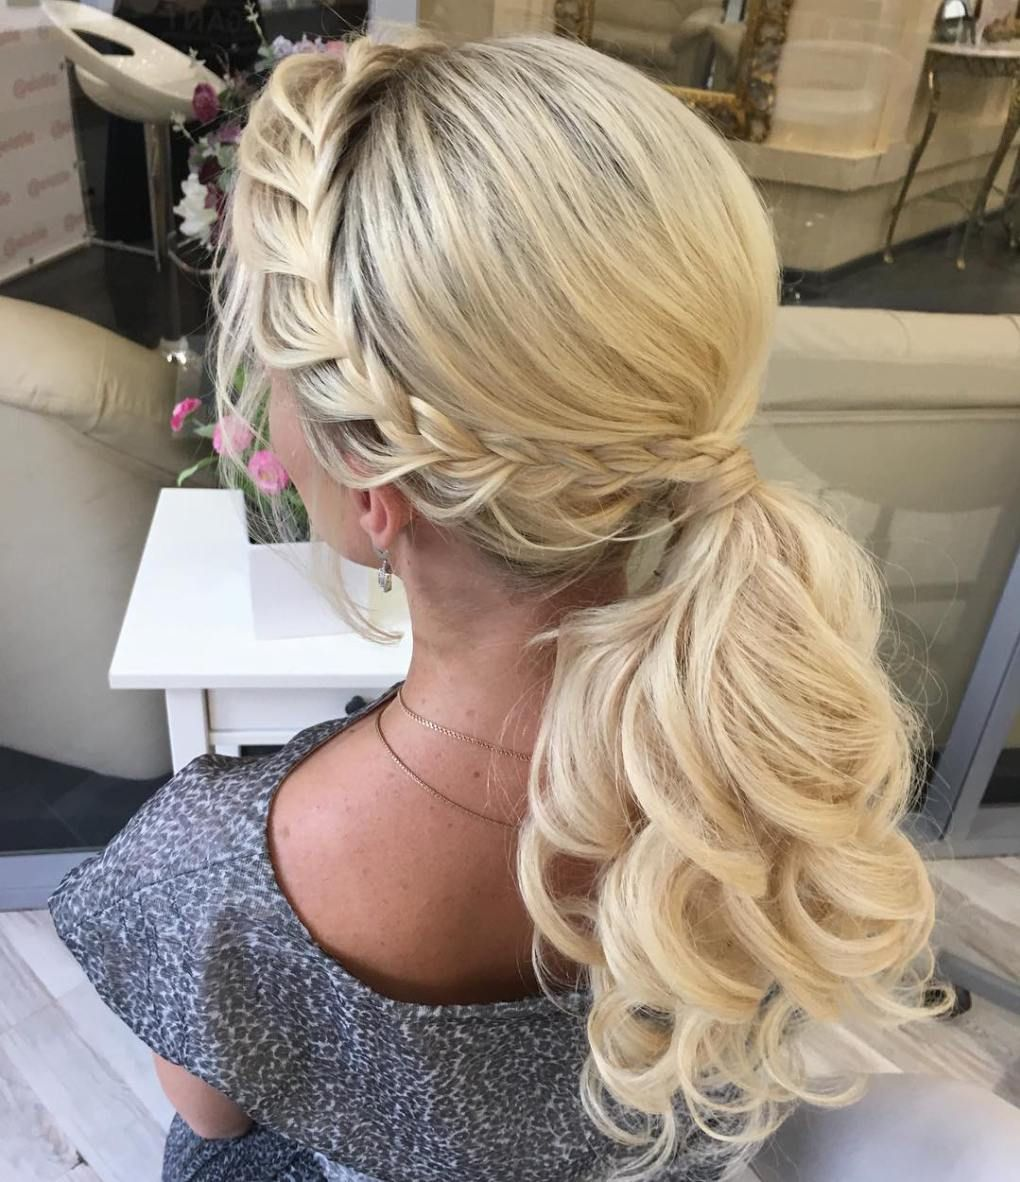 20 Eye-Catching Ways to Style Curly and Wavy Ponytails | Low ...